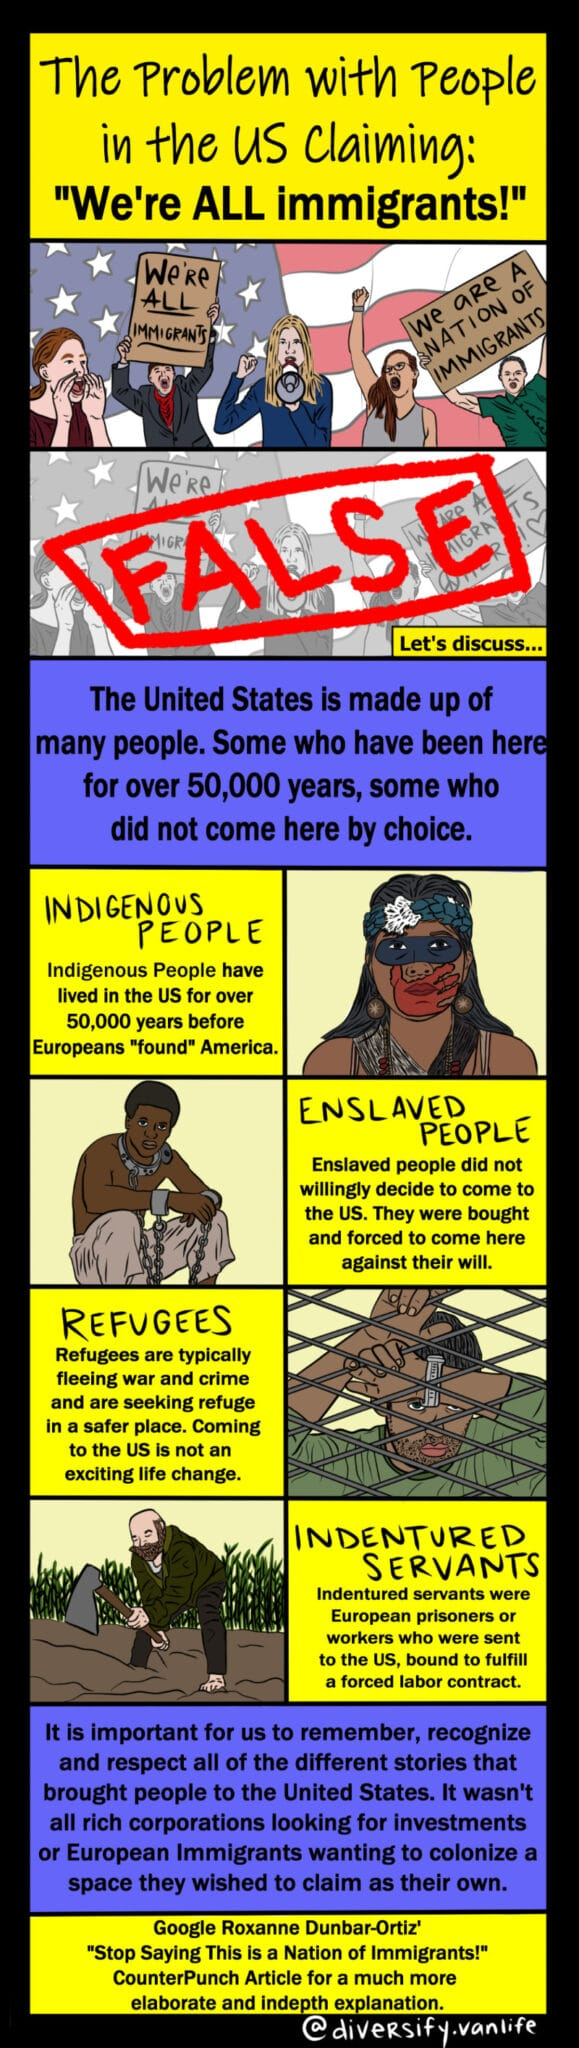 Comic strip depicting the various origins of people in this country. We aren't all immigrants